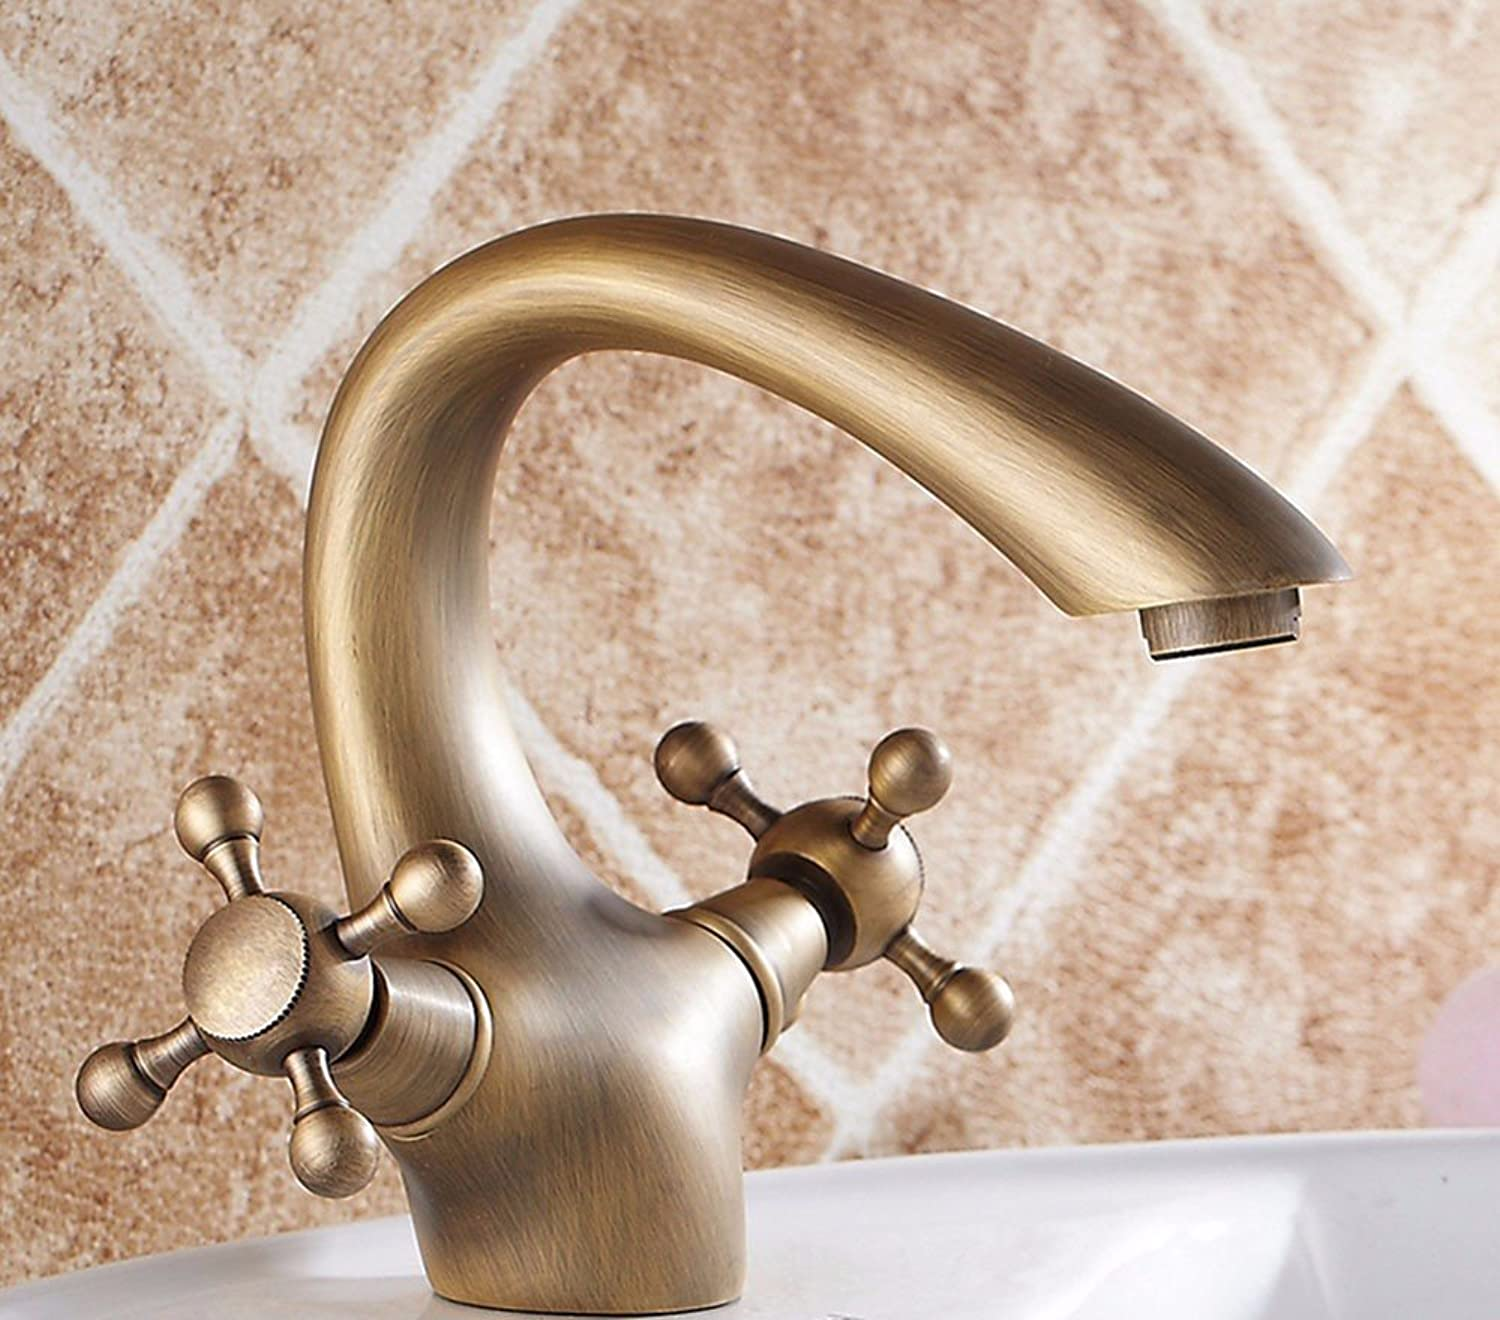 Hlluya Professional Sink Mixer Tap Kitchen Faucet Brass, gold plated, Single, Double, hot and cold, the basin and sink faucet 4